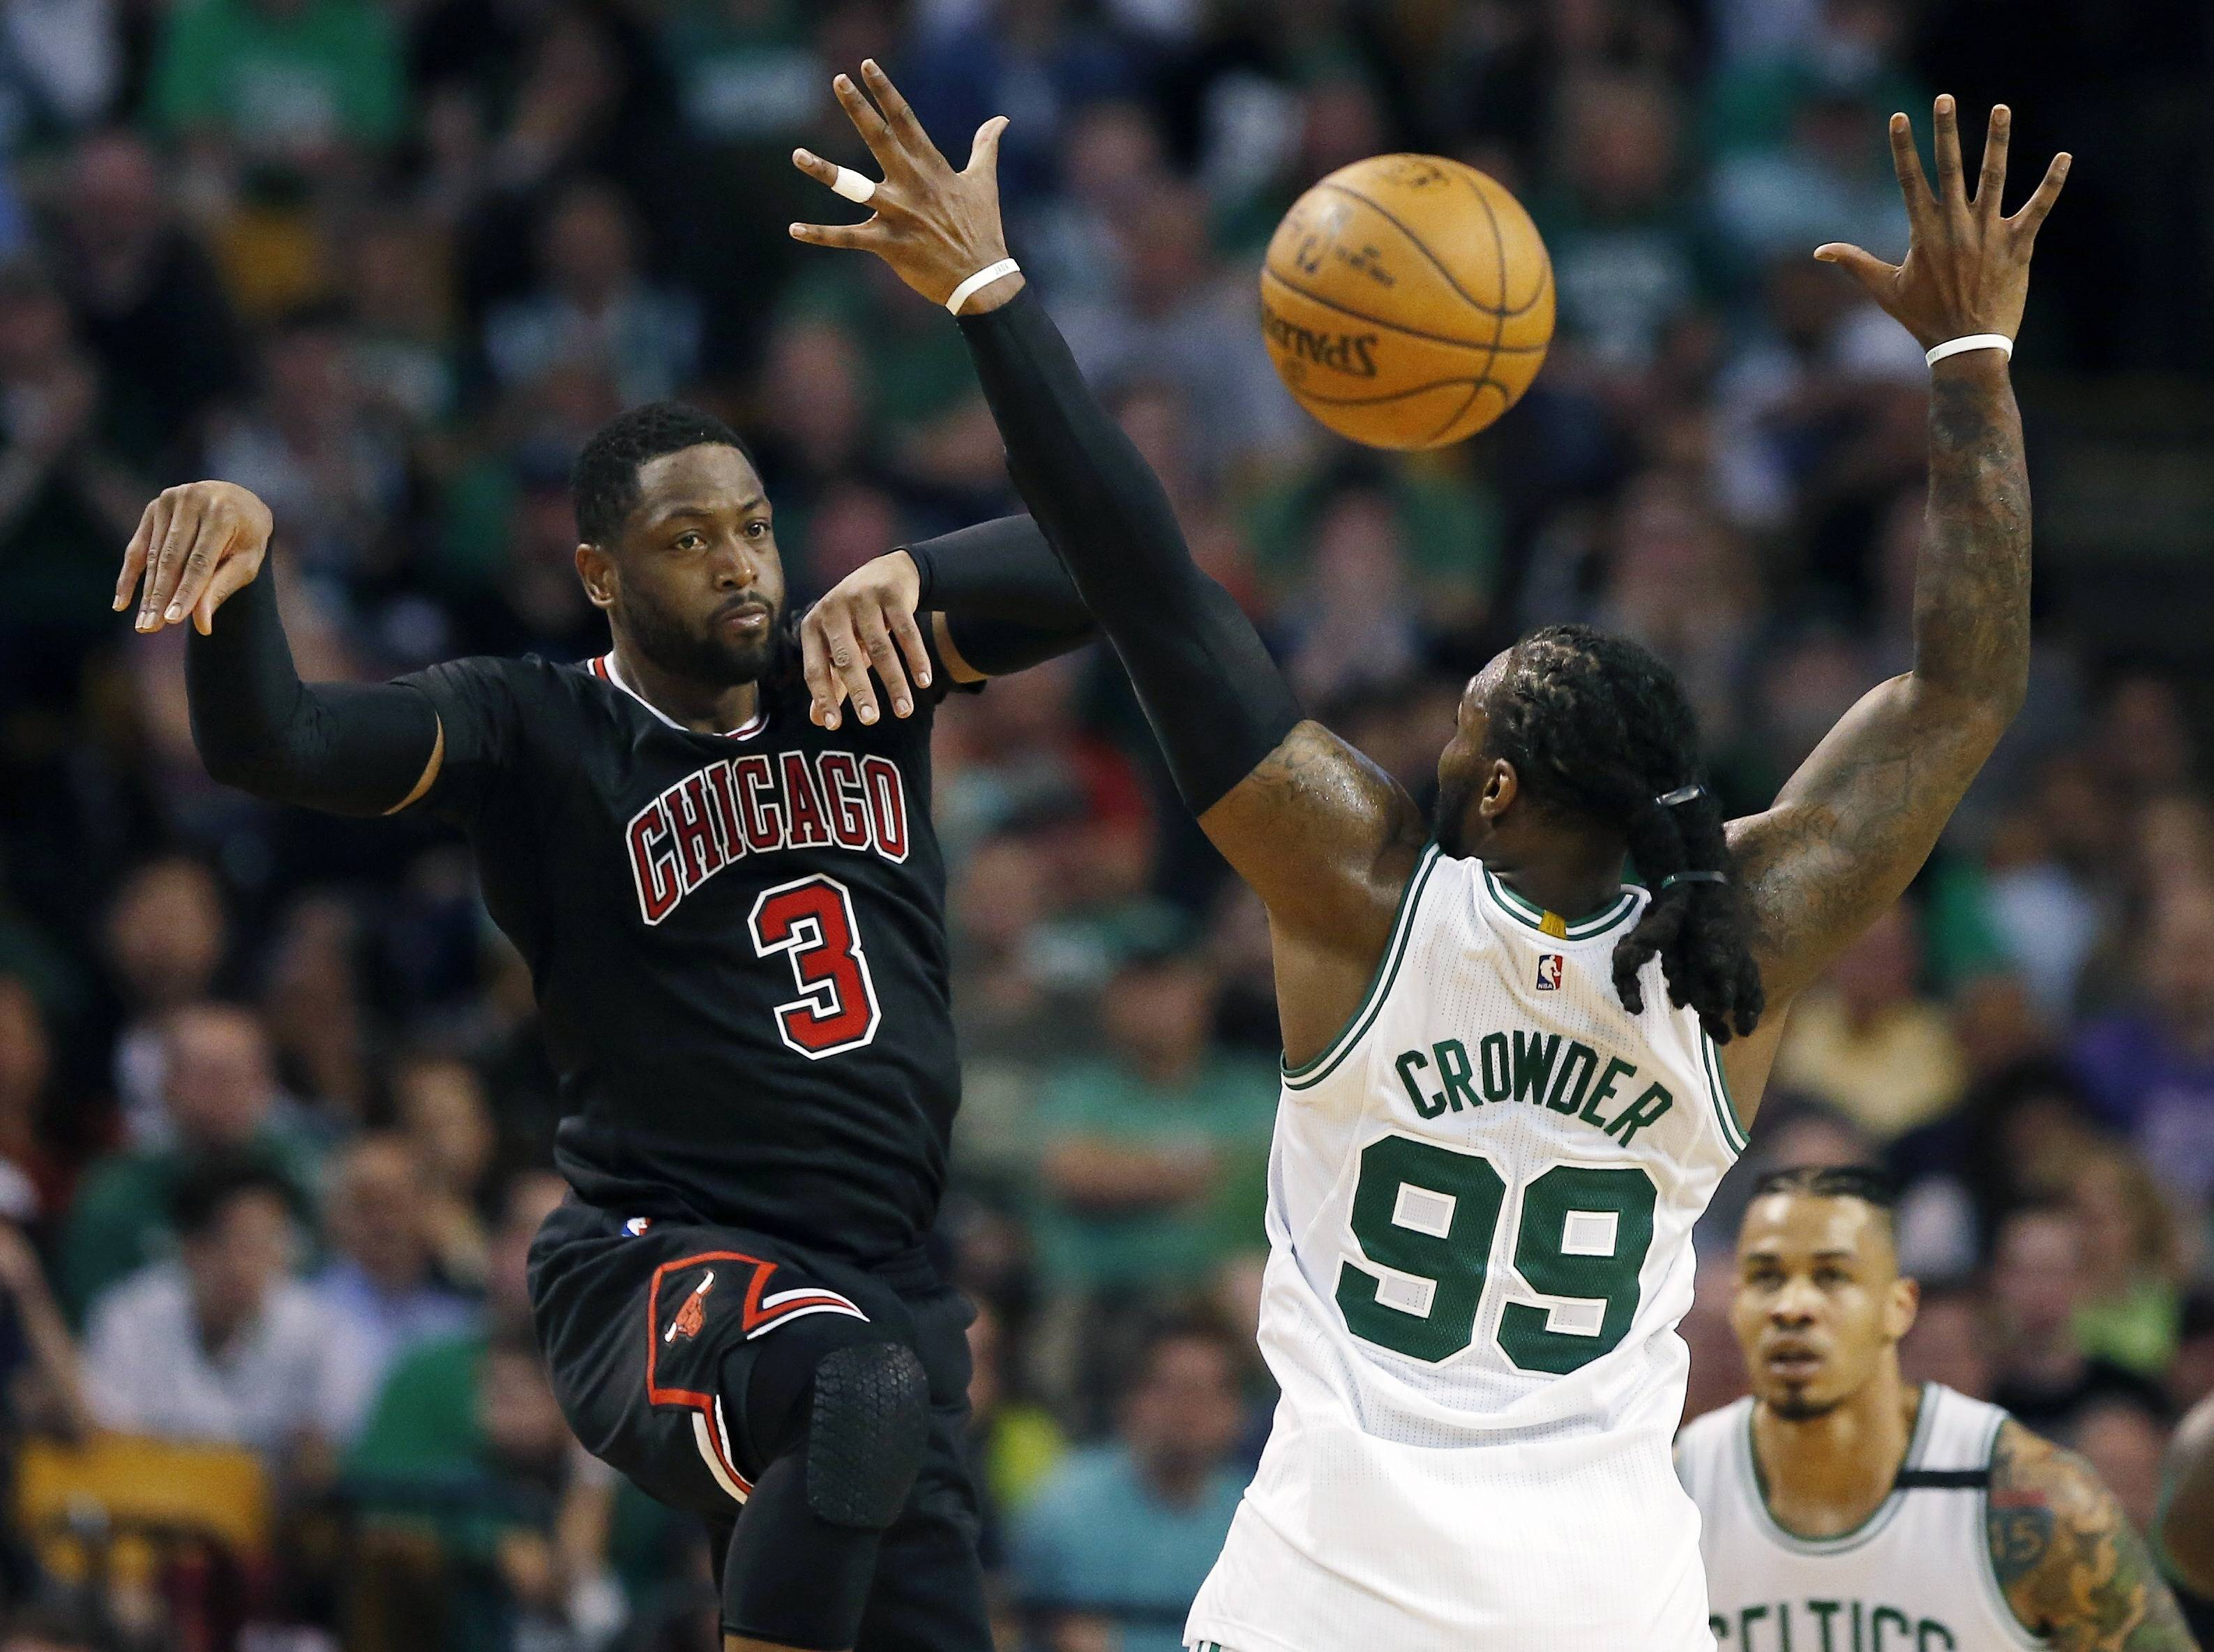 Bulls have reason to feel good about chances against Boston